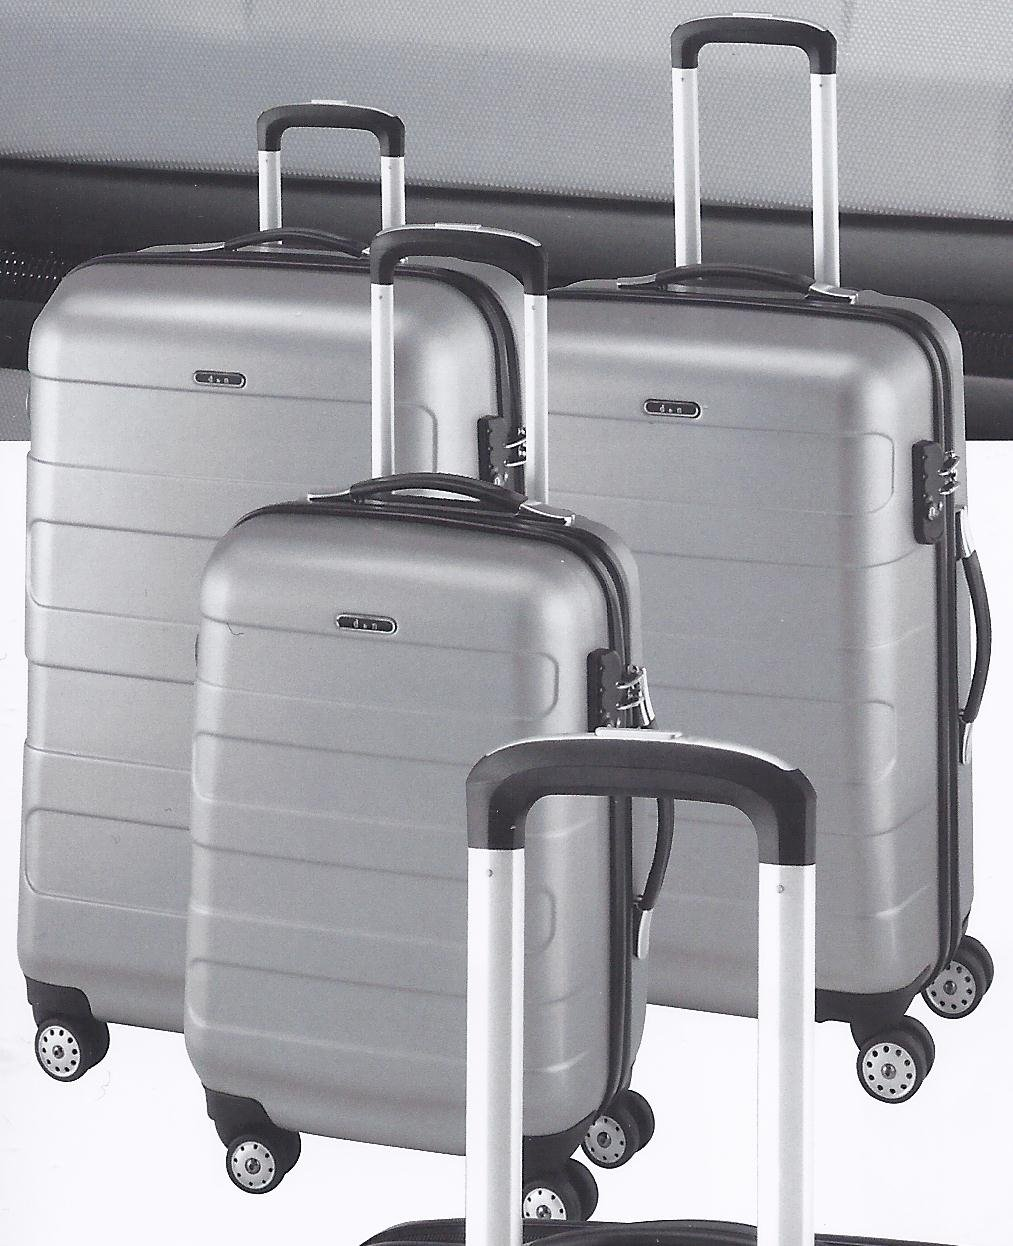 d&n Travel Line 8600 3teiliges Set 4-Rollen Trolleys silbergrau